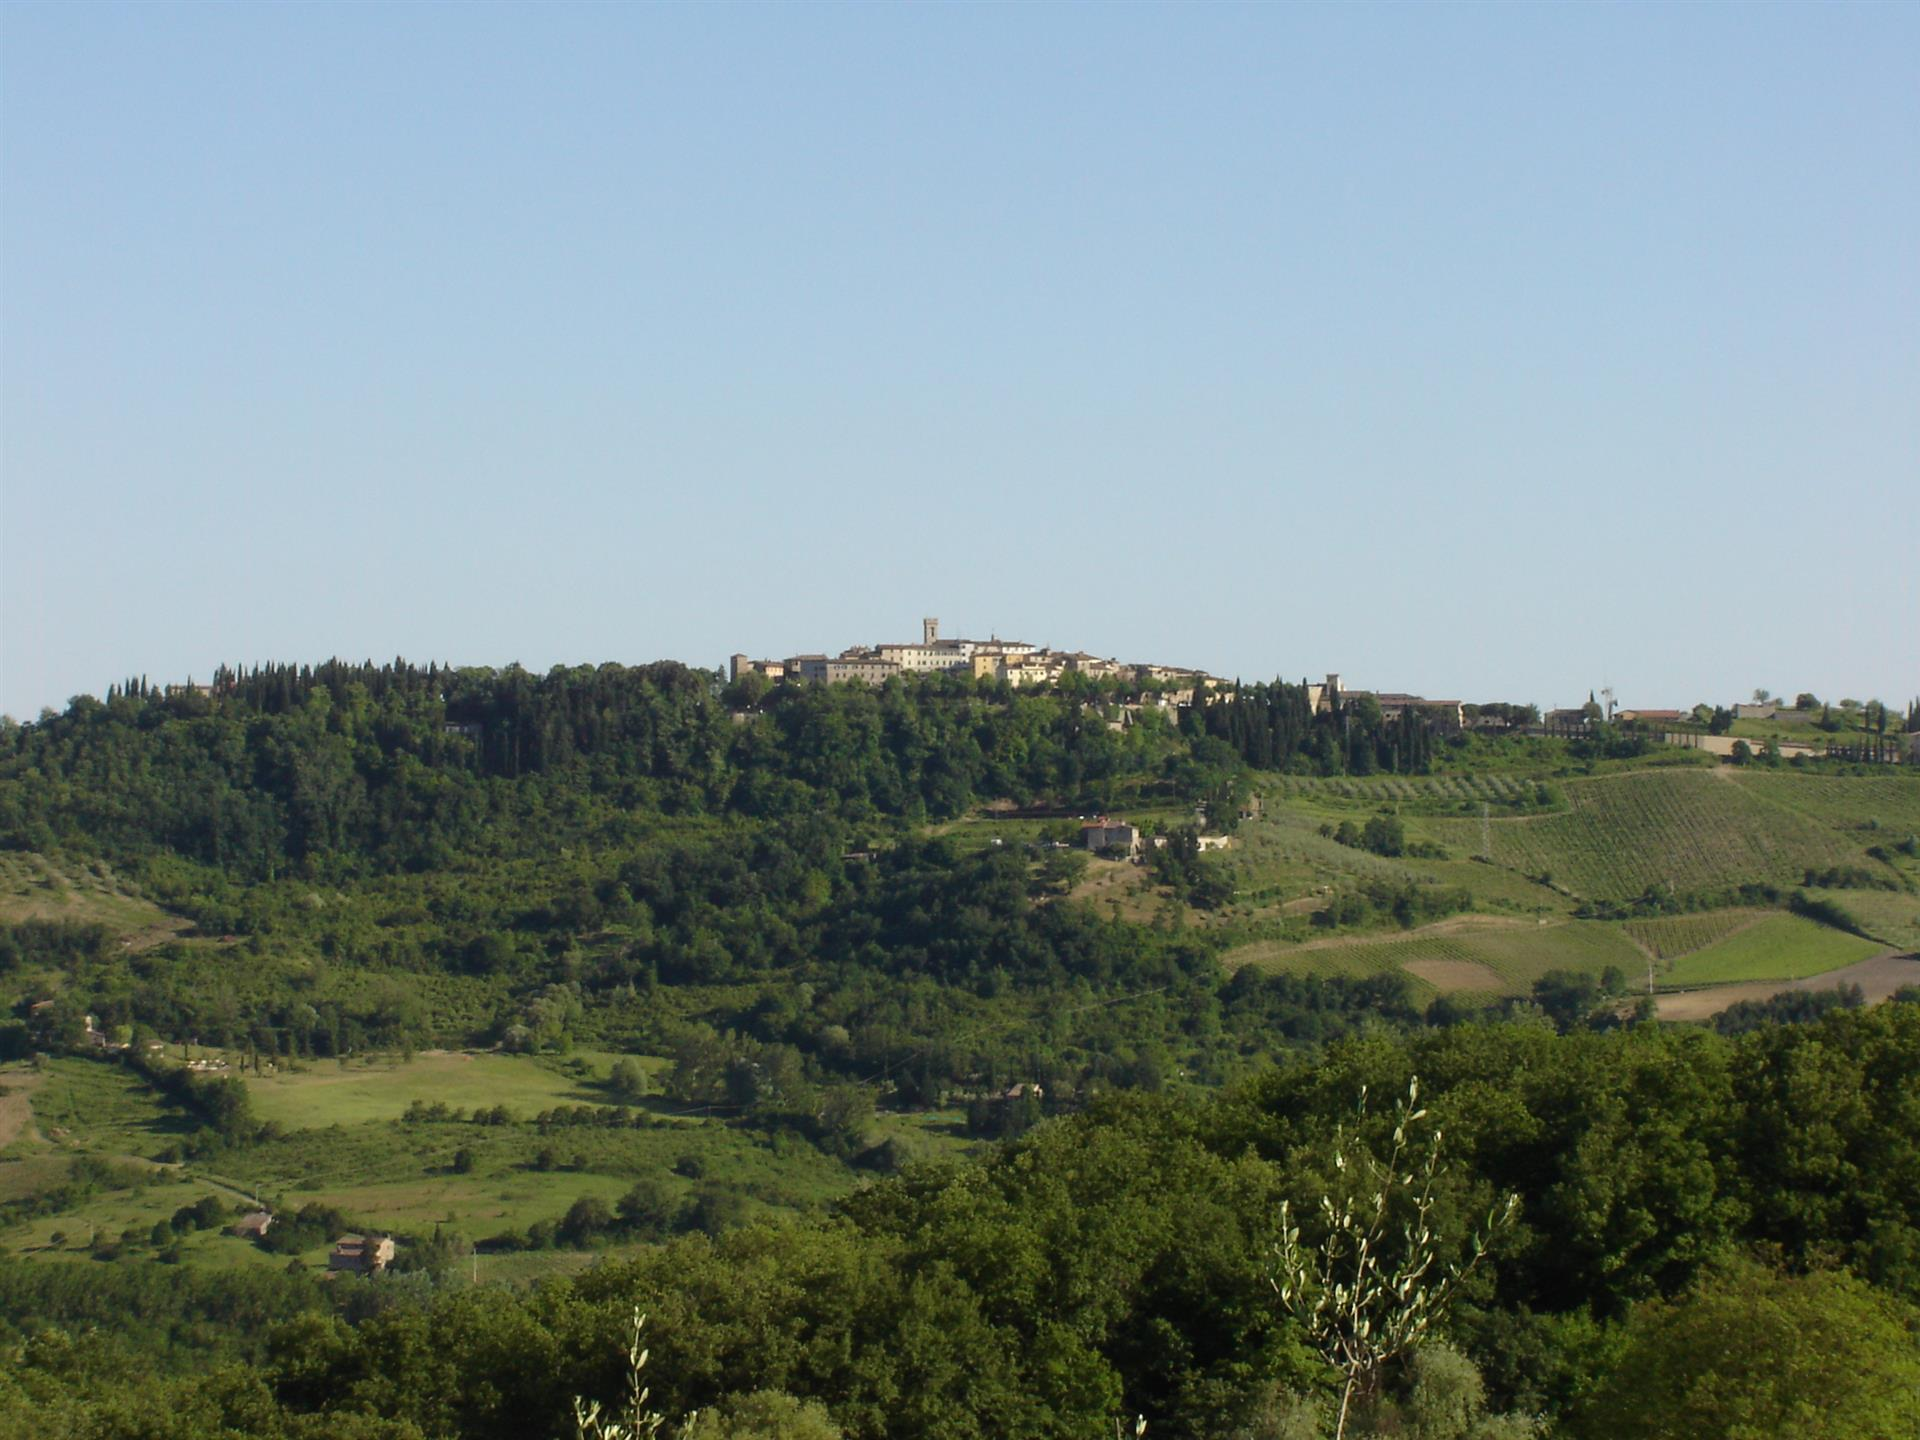 hills of the landscape of tuscany